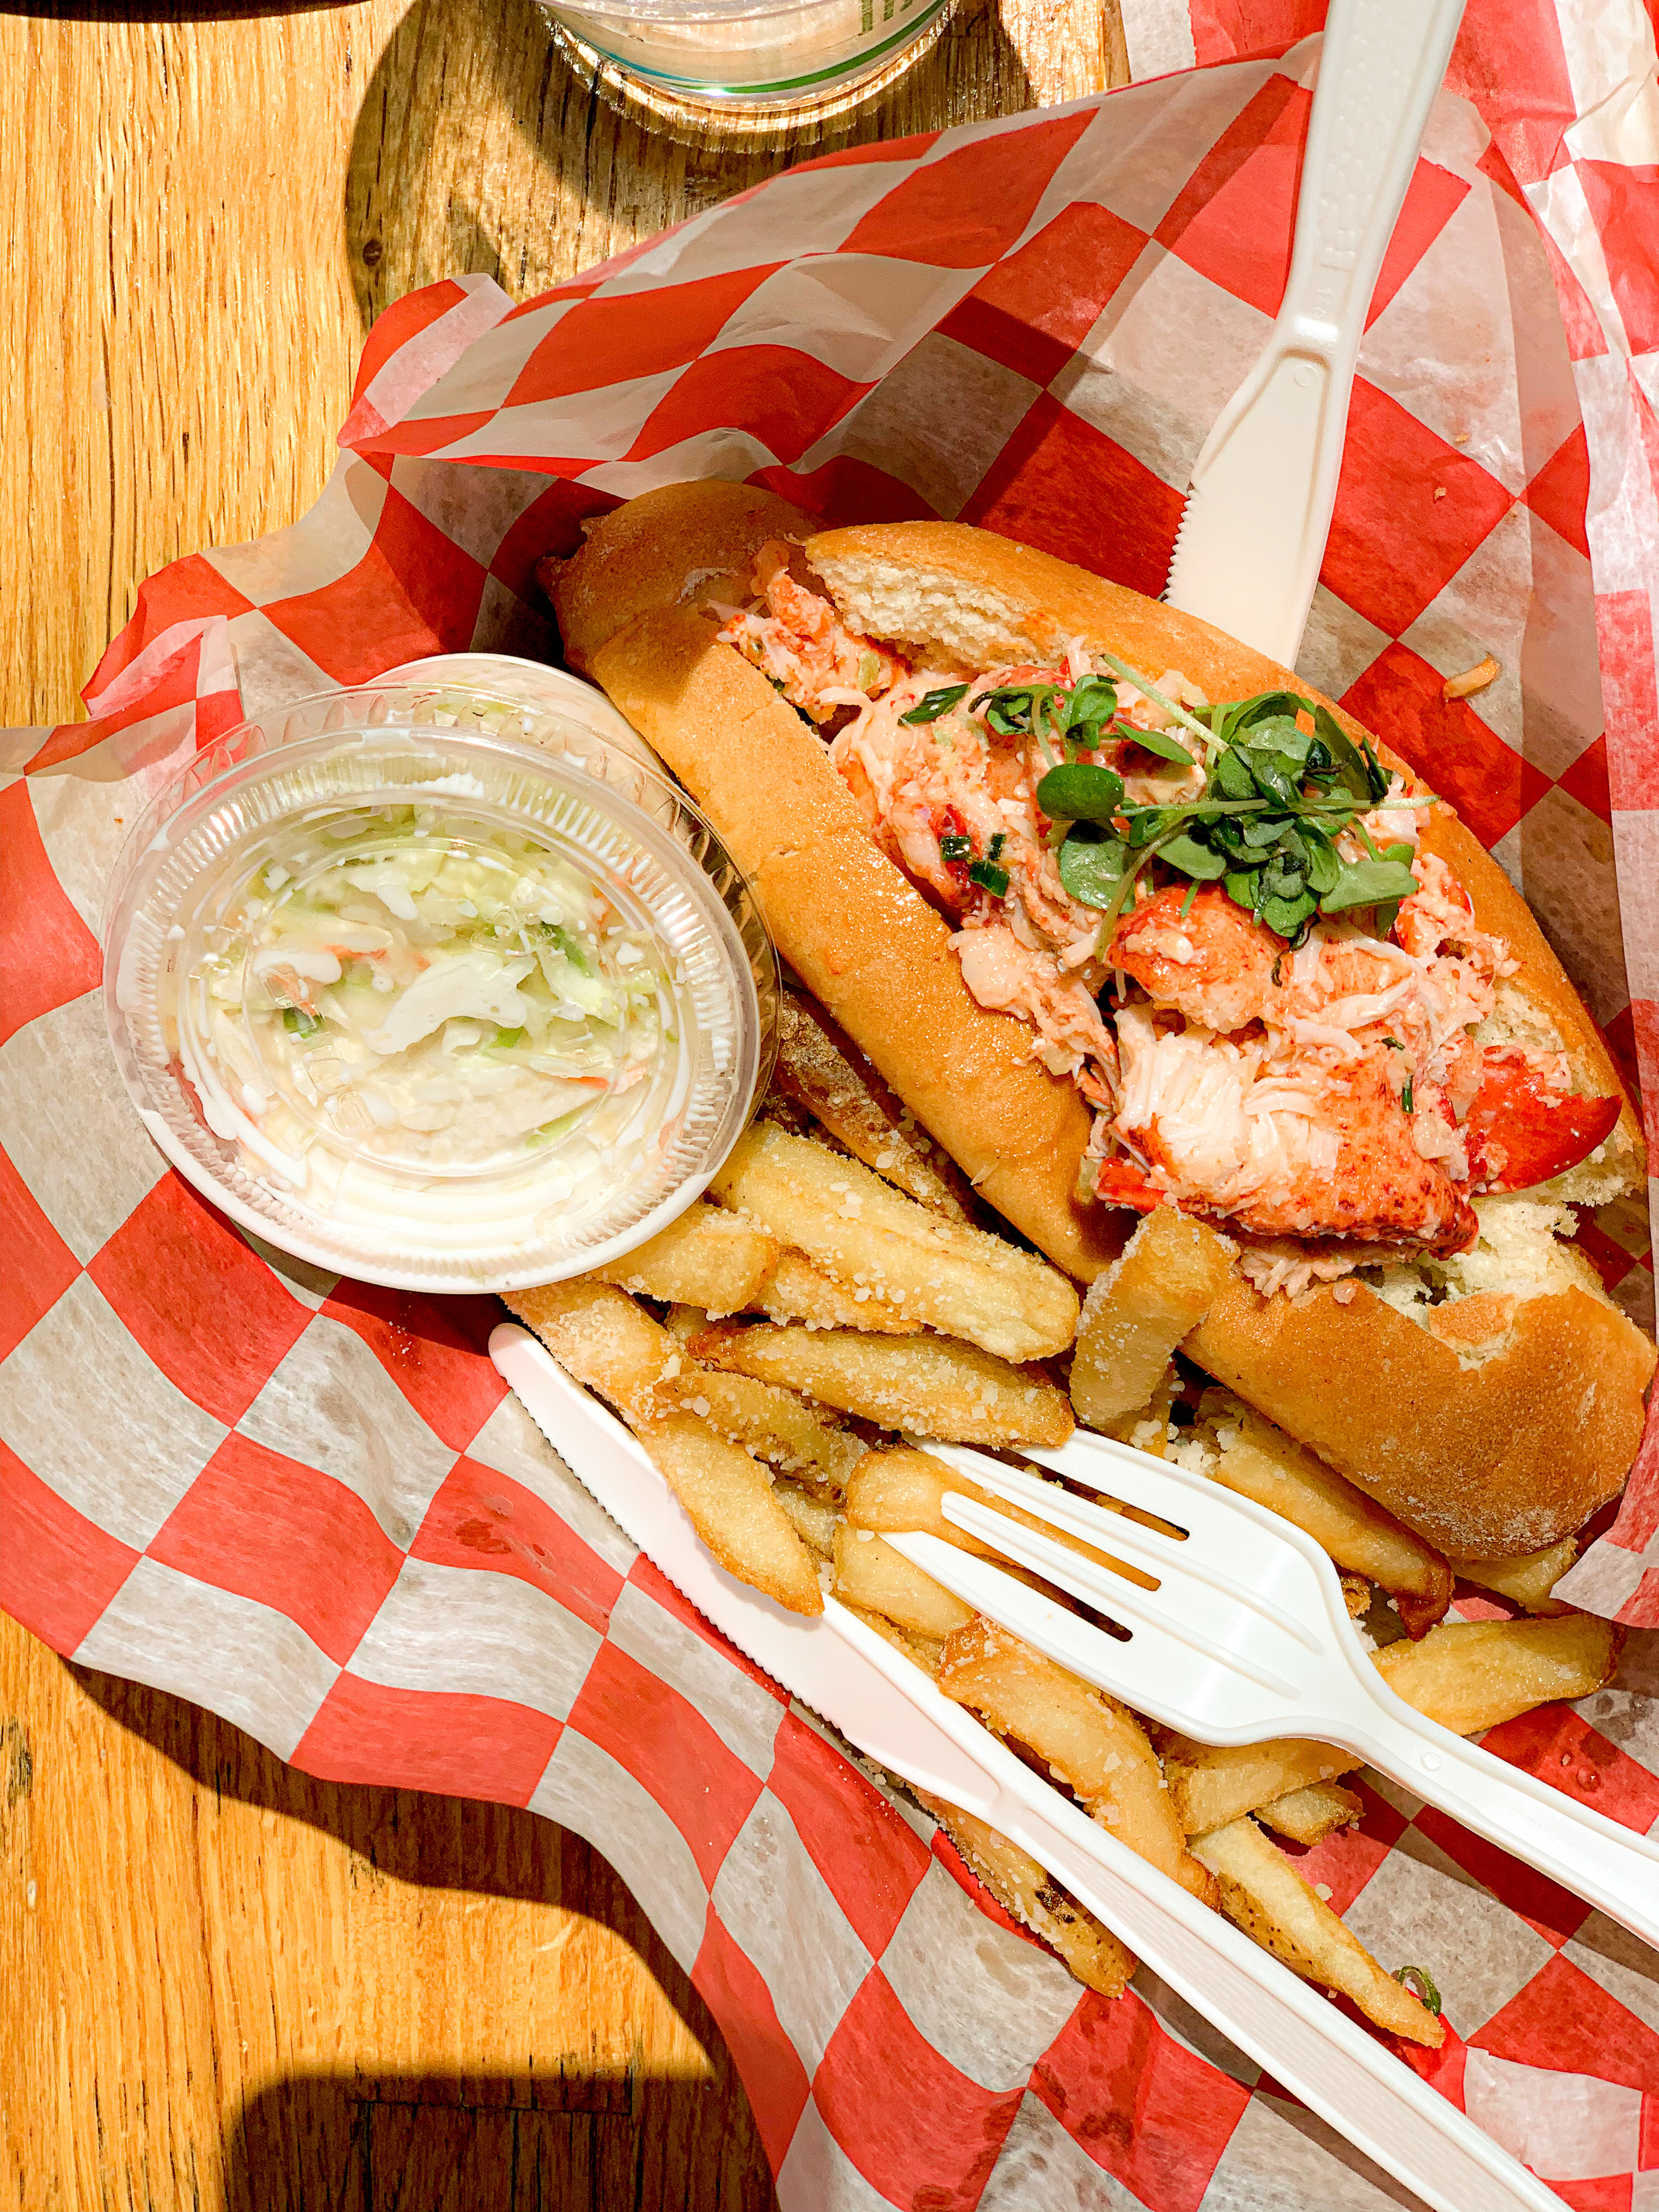 Experienced a lobster roll on a ferry floating through Hudson River